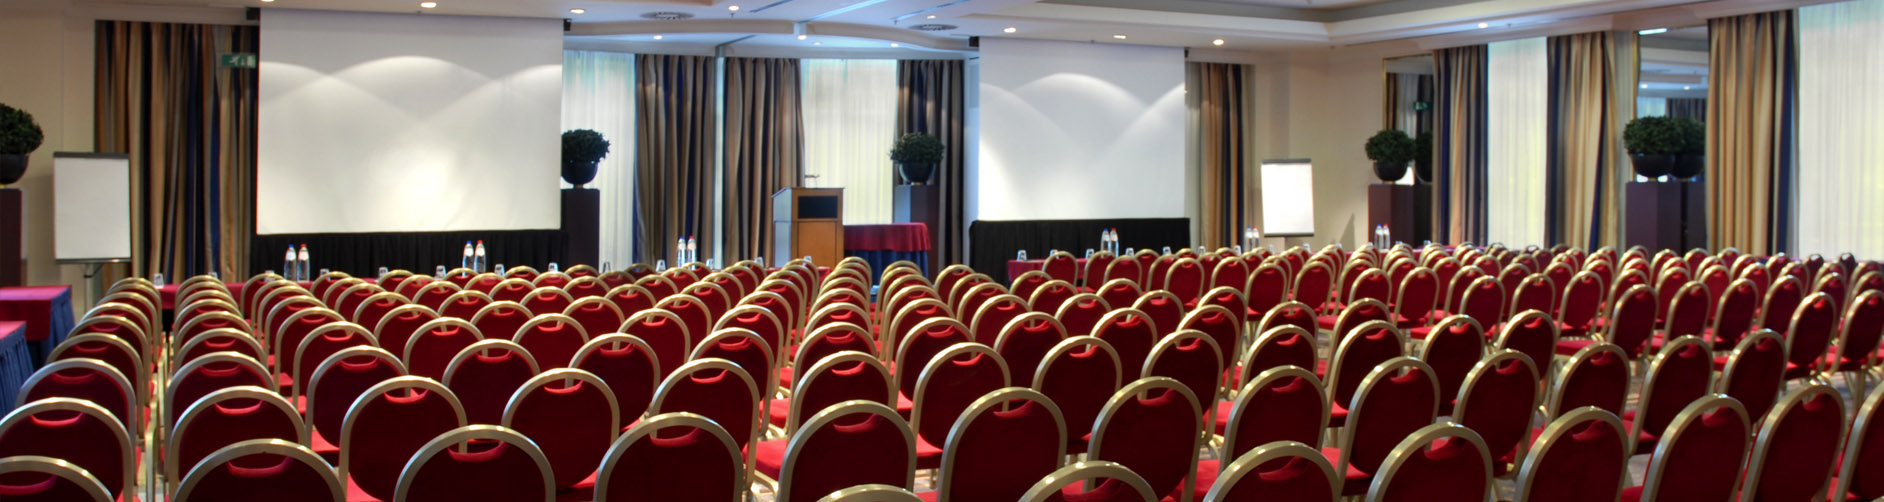 Large Conference Room with Projector Screens and Rows of Chairs